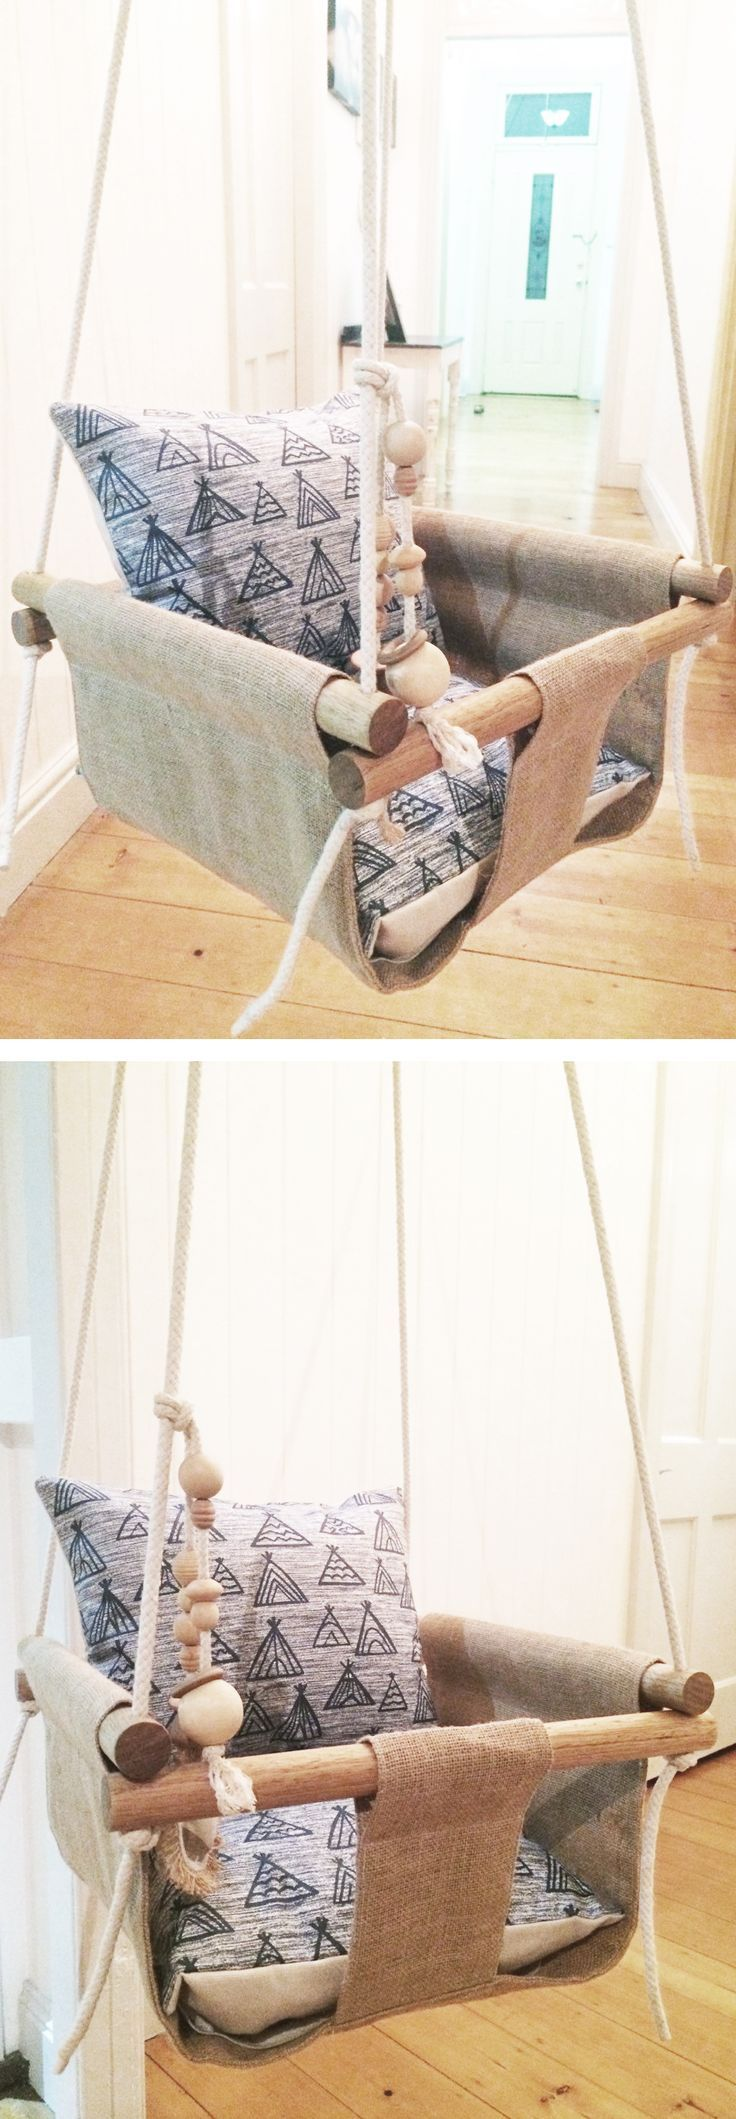 Handmade Burlap Baby Swing, Toddler Swing or Kids Swing and Rattle - perfect Christmas holiday gift for a toddler or baby parent, mom, or dad. Etsy - handmade in Australia. https://www.etsy.com/au/listing/252125621/handmade-burlap-baby-swing-toddler-swing?geo=auz